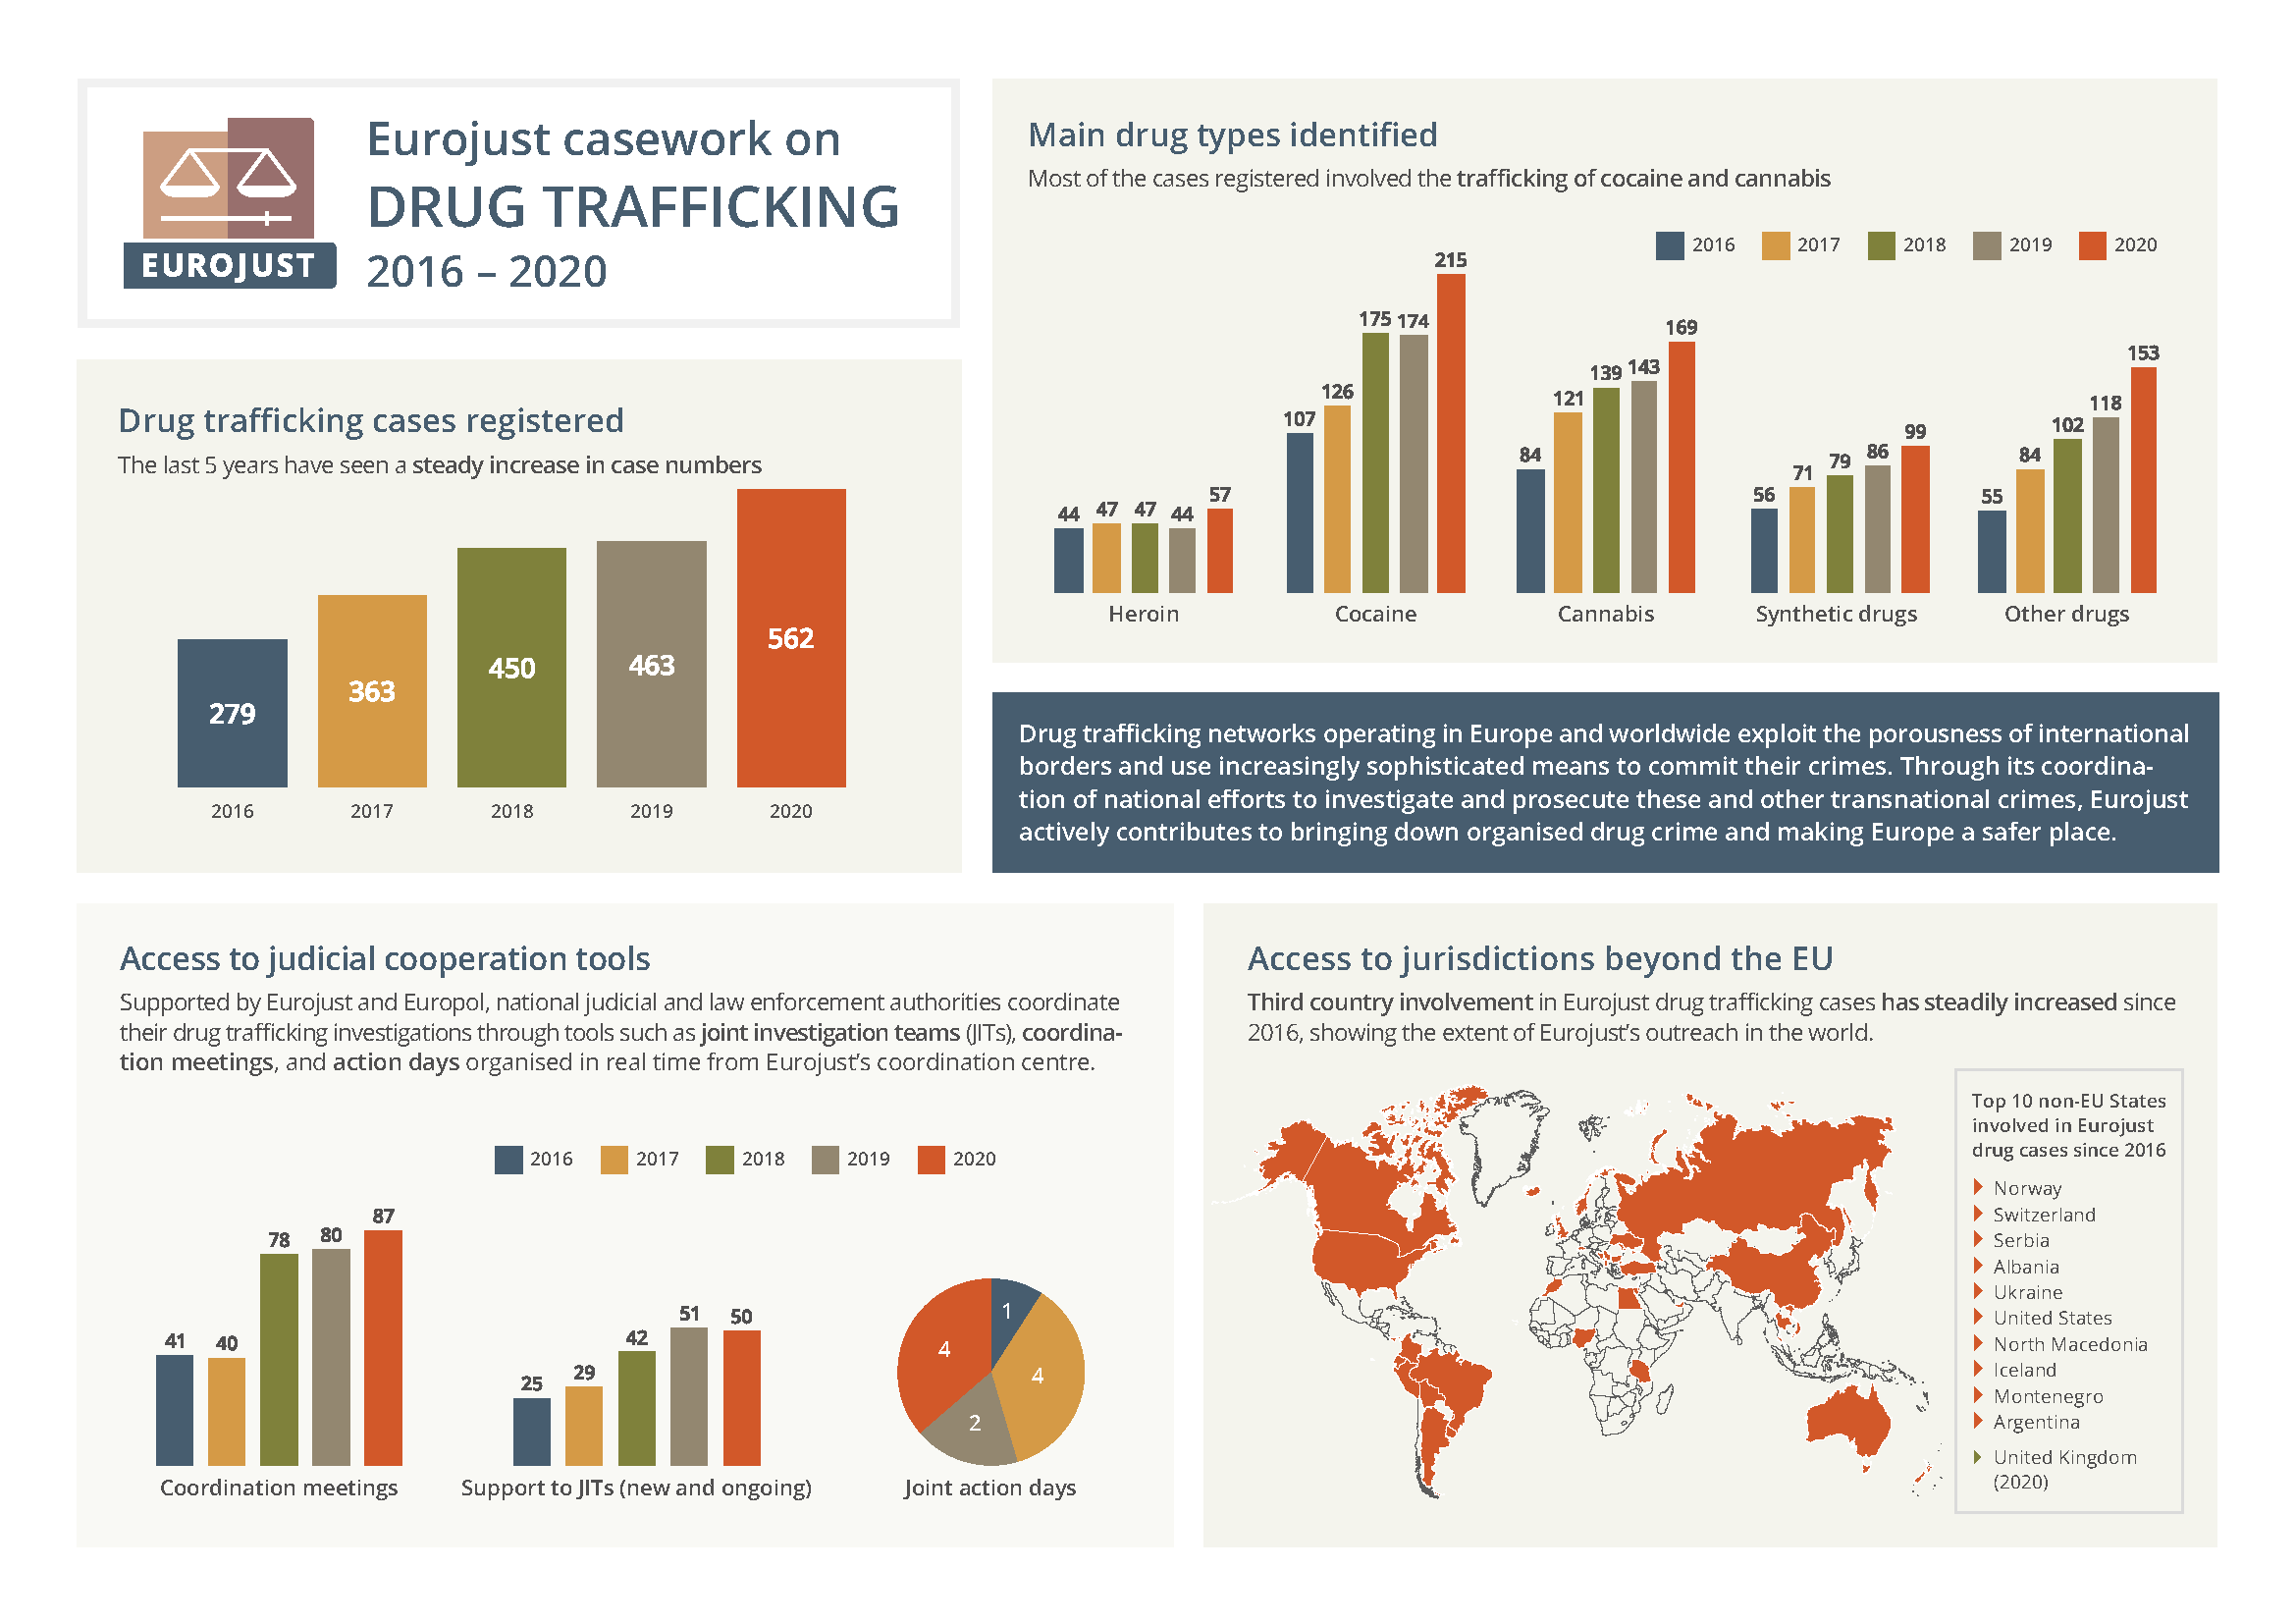 Eurojust casework on drug trafficking, 2016-2020